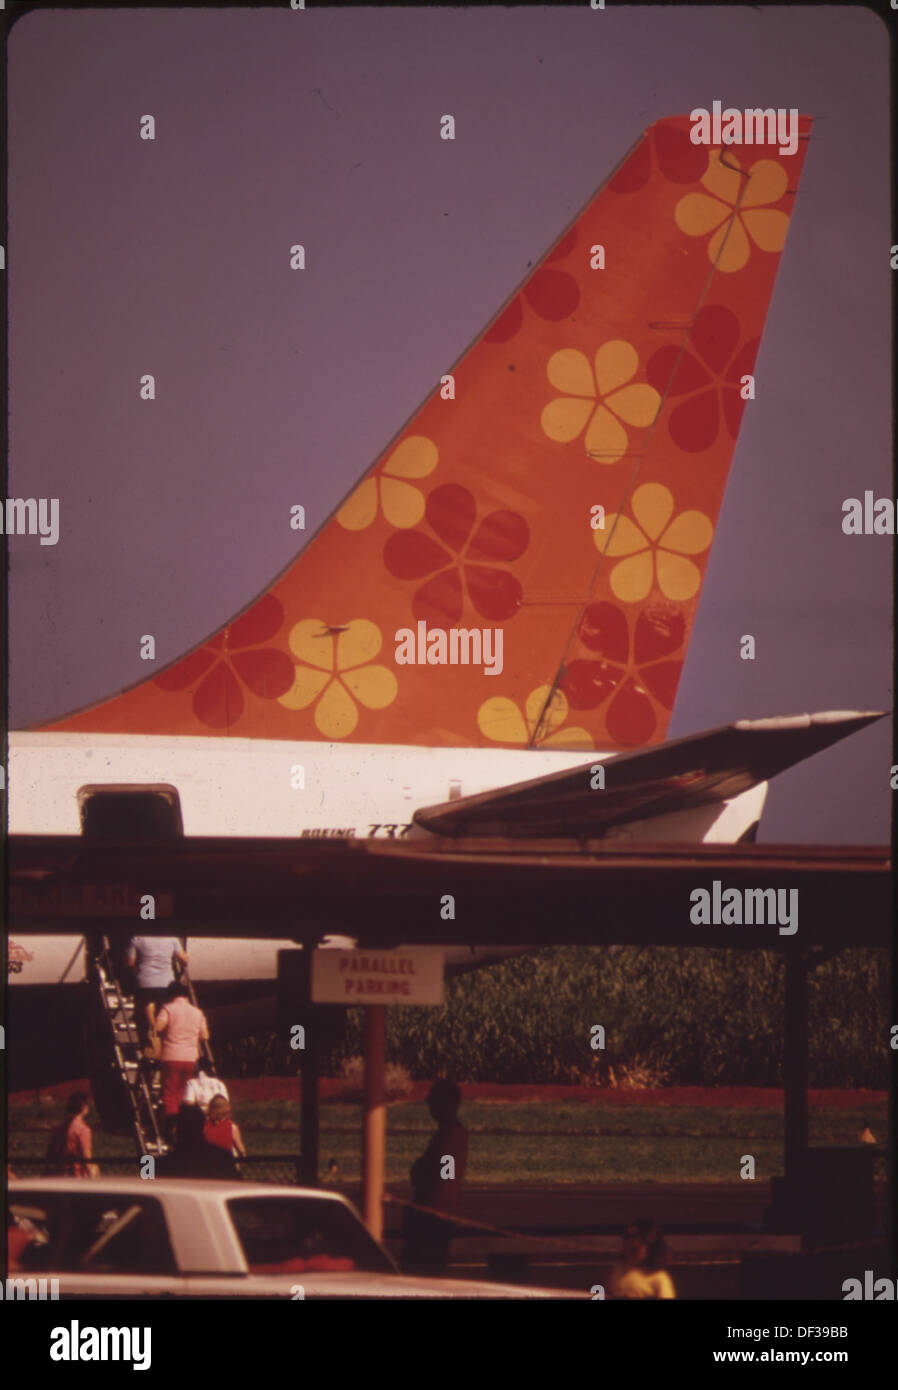 ALOHA AIRLINES IN ONE OF THE TWO MAJOR AIRLINES CONNECTING THE ISLANDS. NO FEASIBLE AND FAST SEAGOING VESSEL HAS BEEN... 553960 Stock Photo